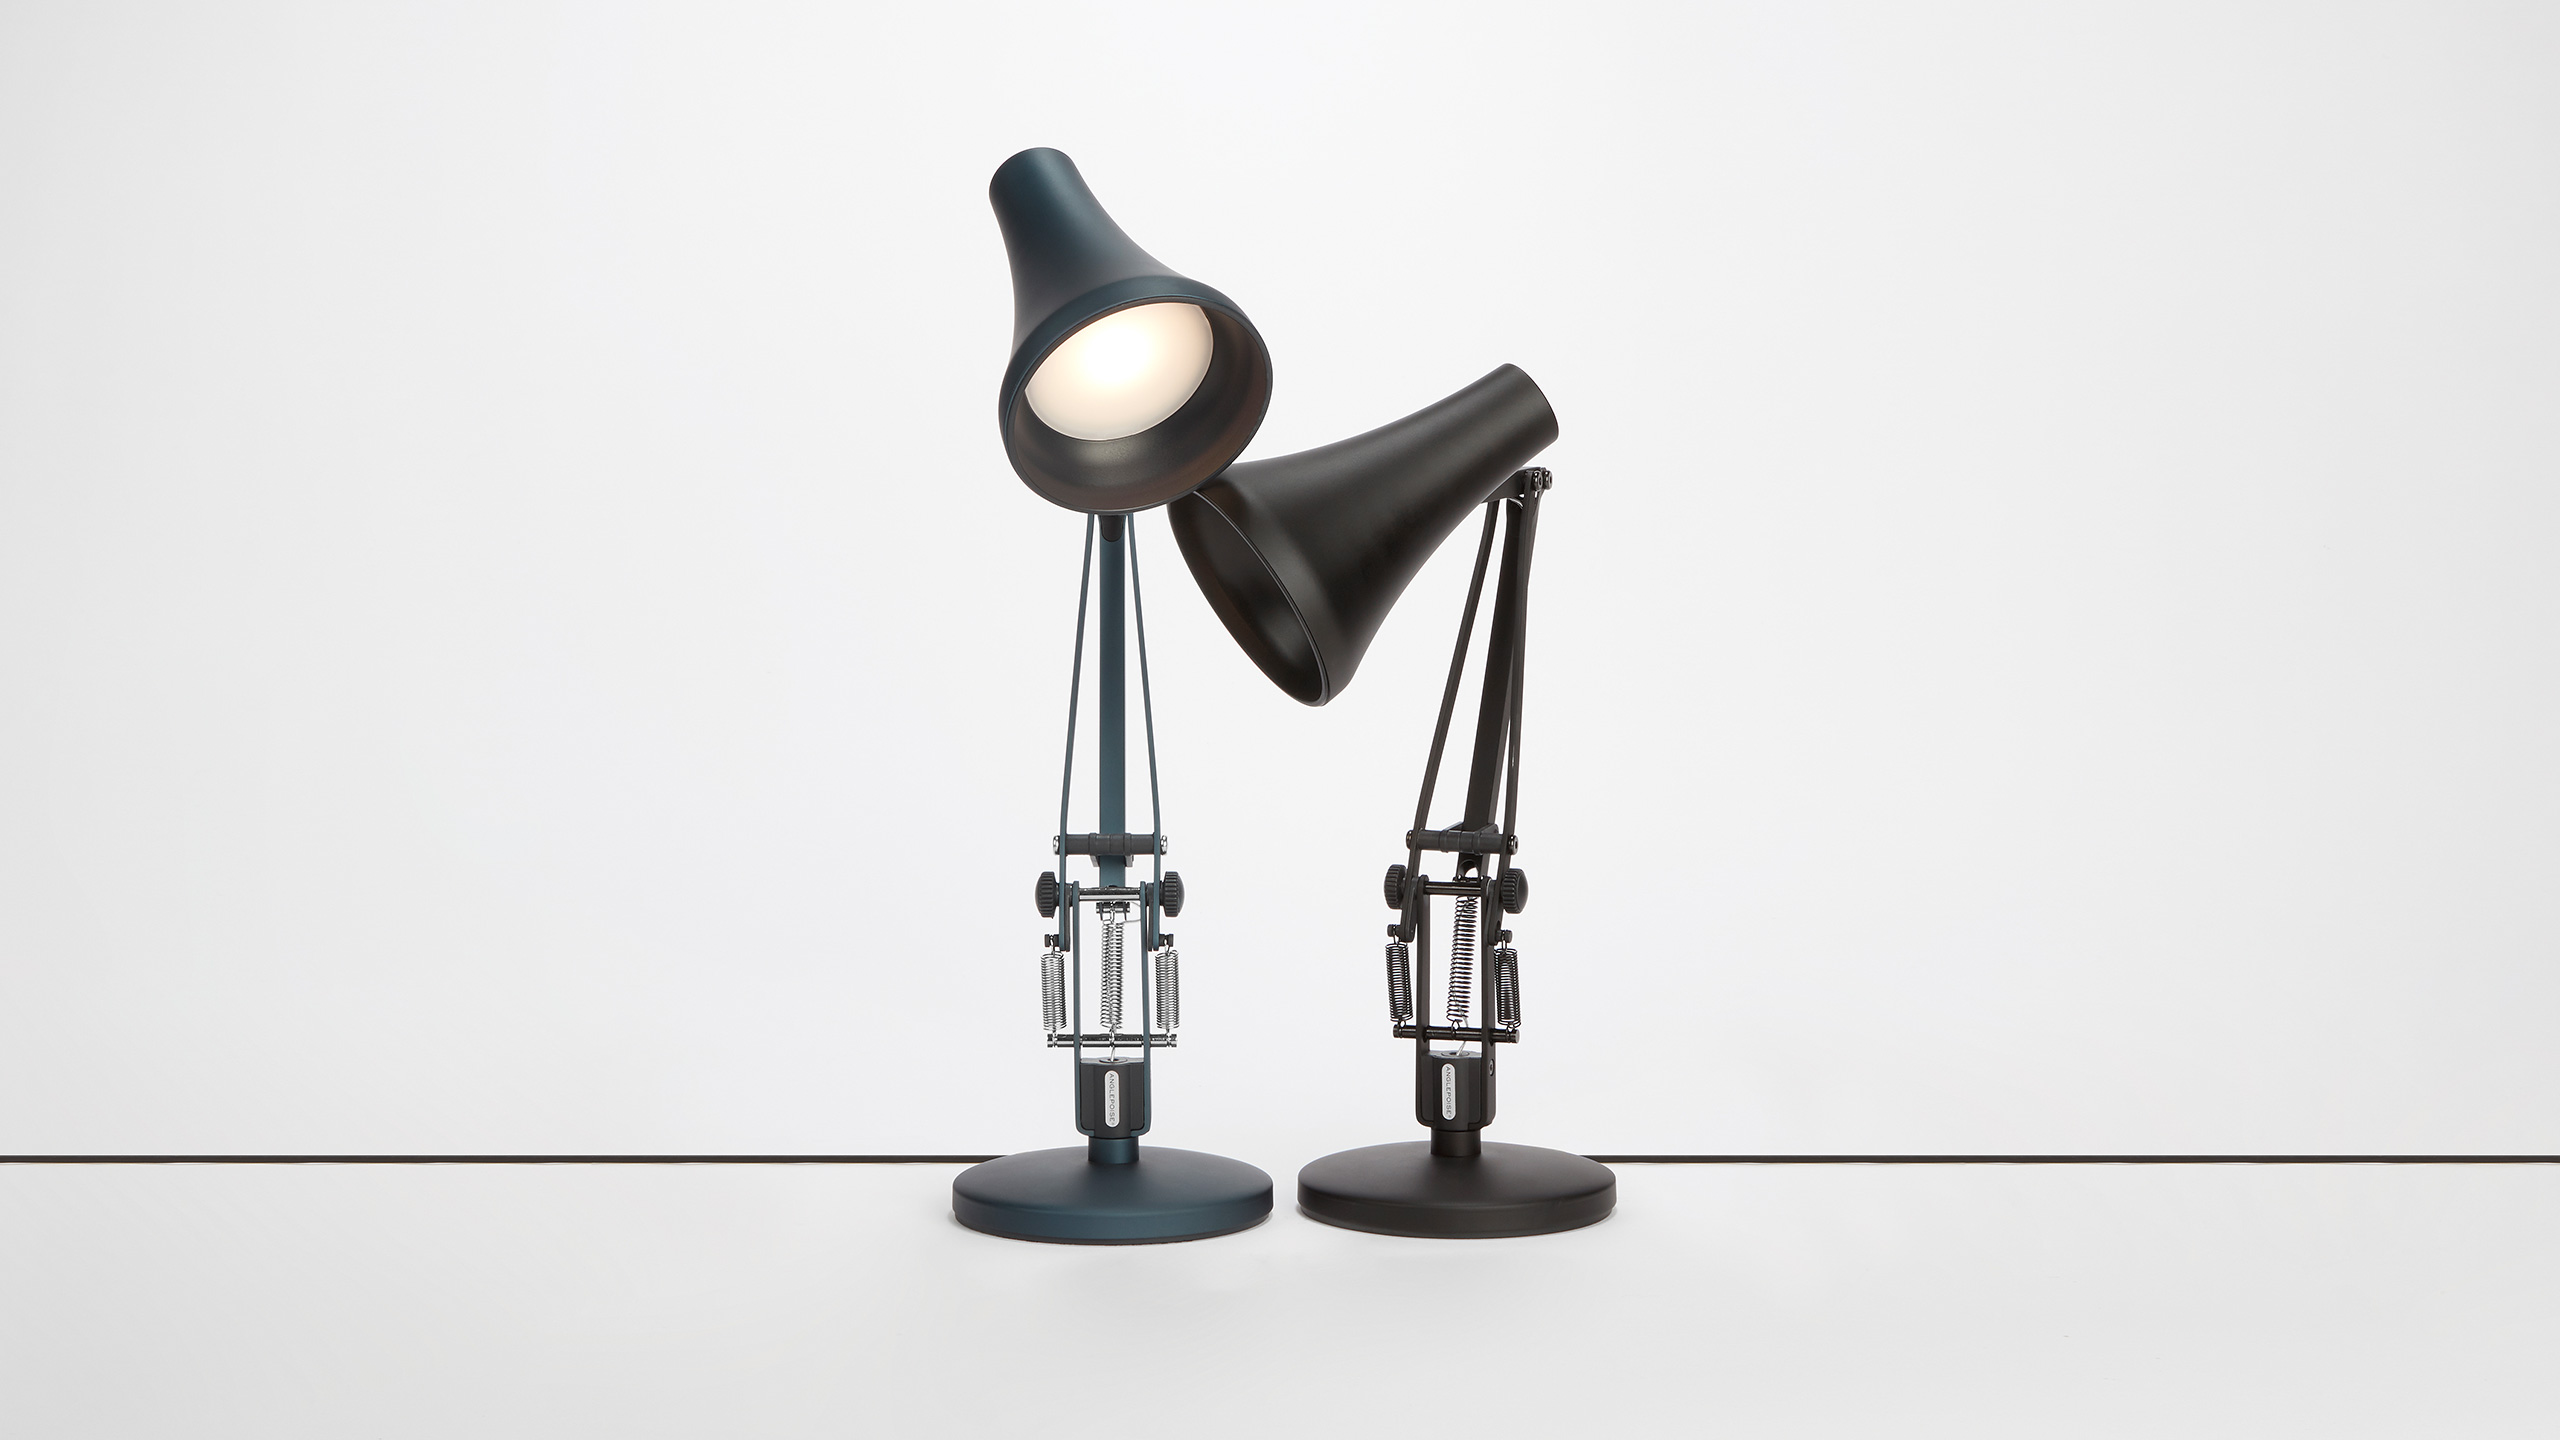 two desk lamps by Anglepoise